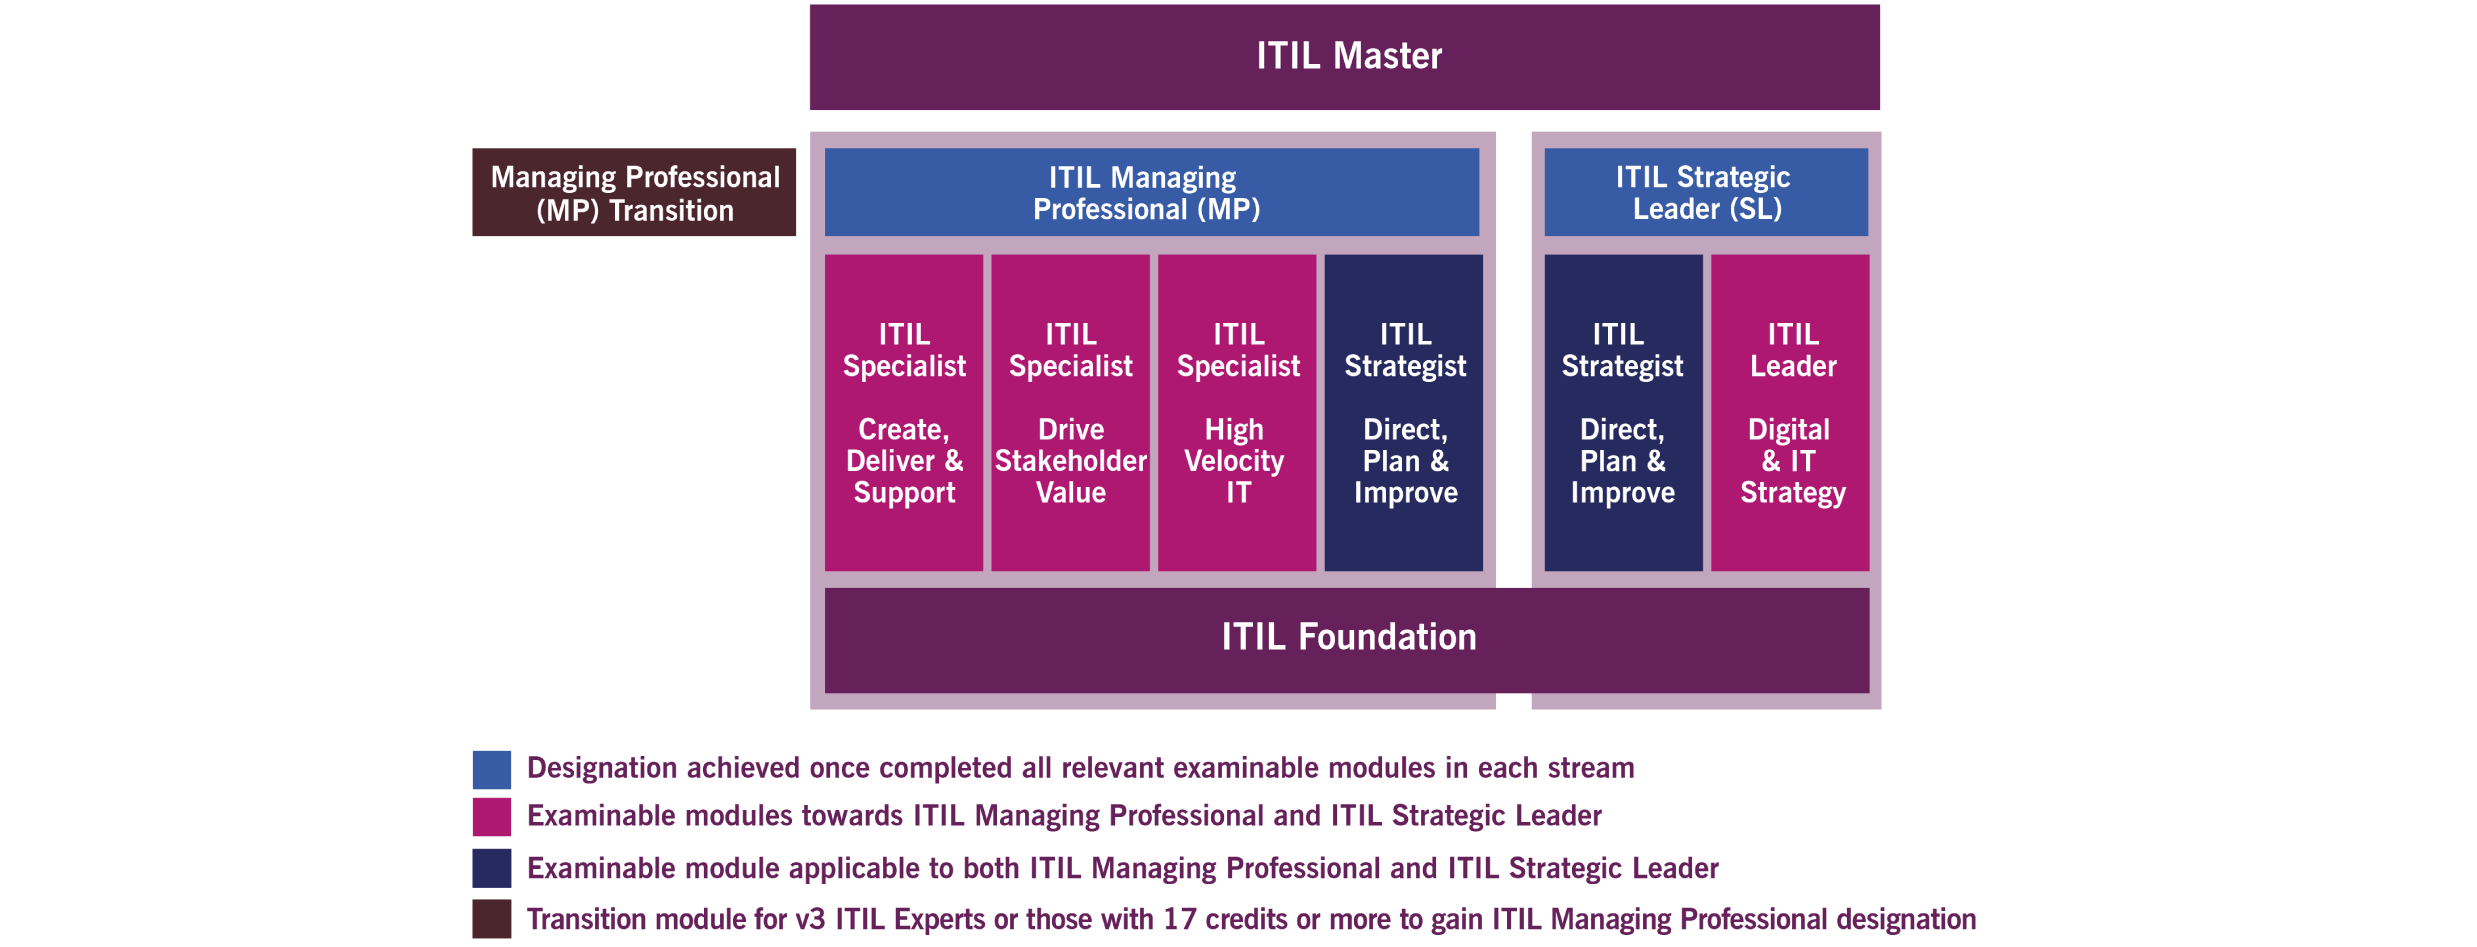 ITIL4-AP-Certification Scheme-Master-with-Transition-highres-20190225